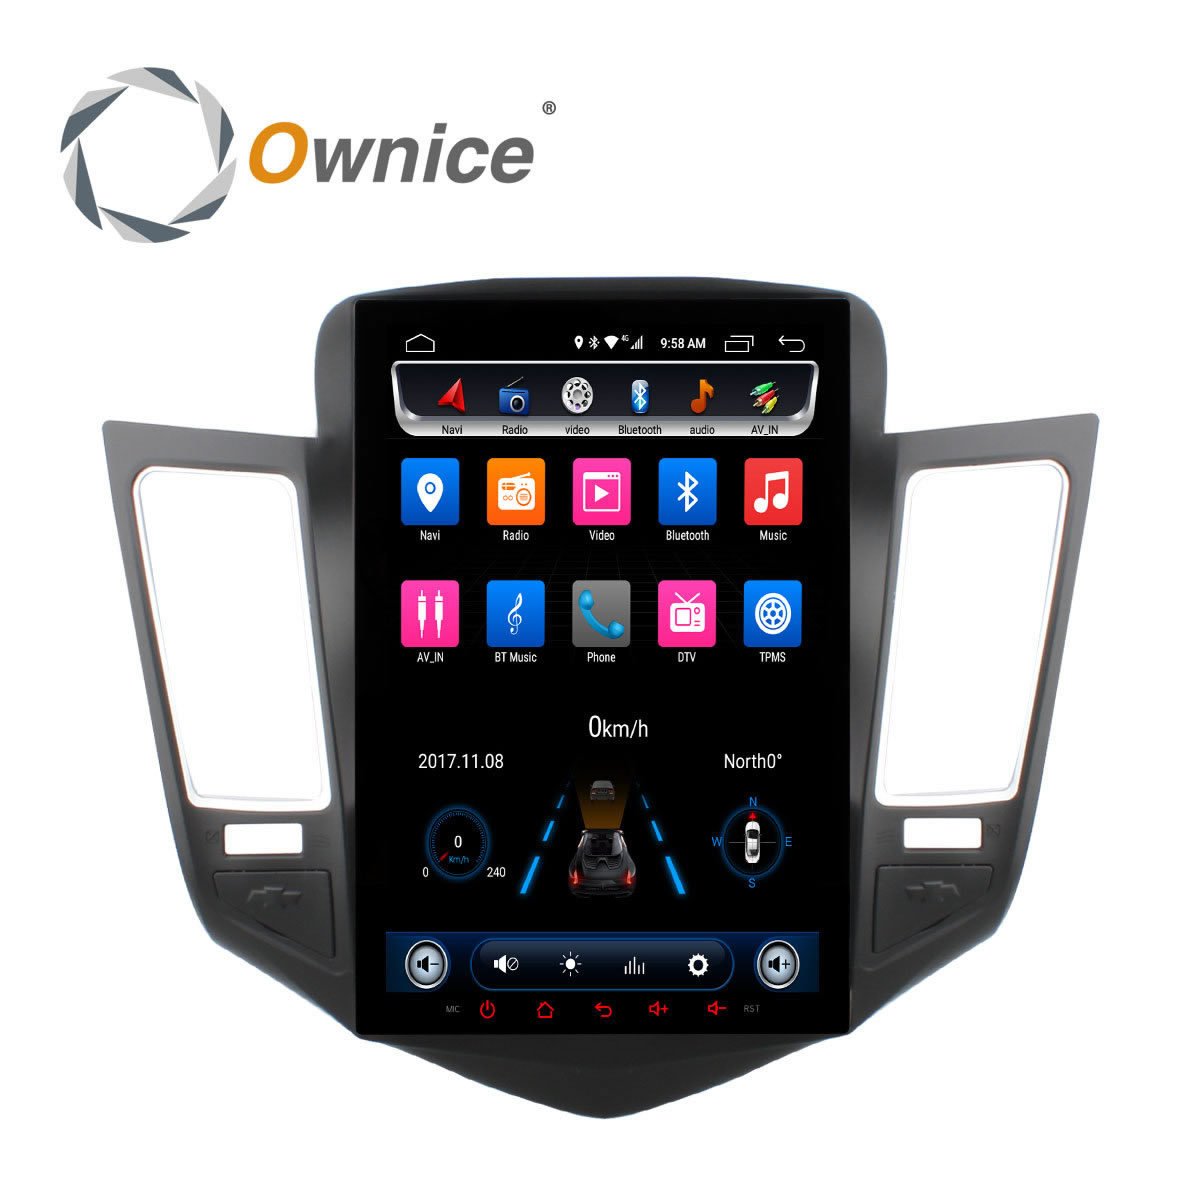 Ownice 10.4 Android Car Stereo DVD Player GPS Navi for Chevrolet Cruze 2009 2014 Auto Headunit Radio Stereo Car Play 2.5d